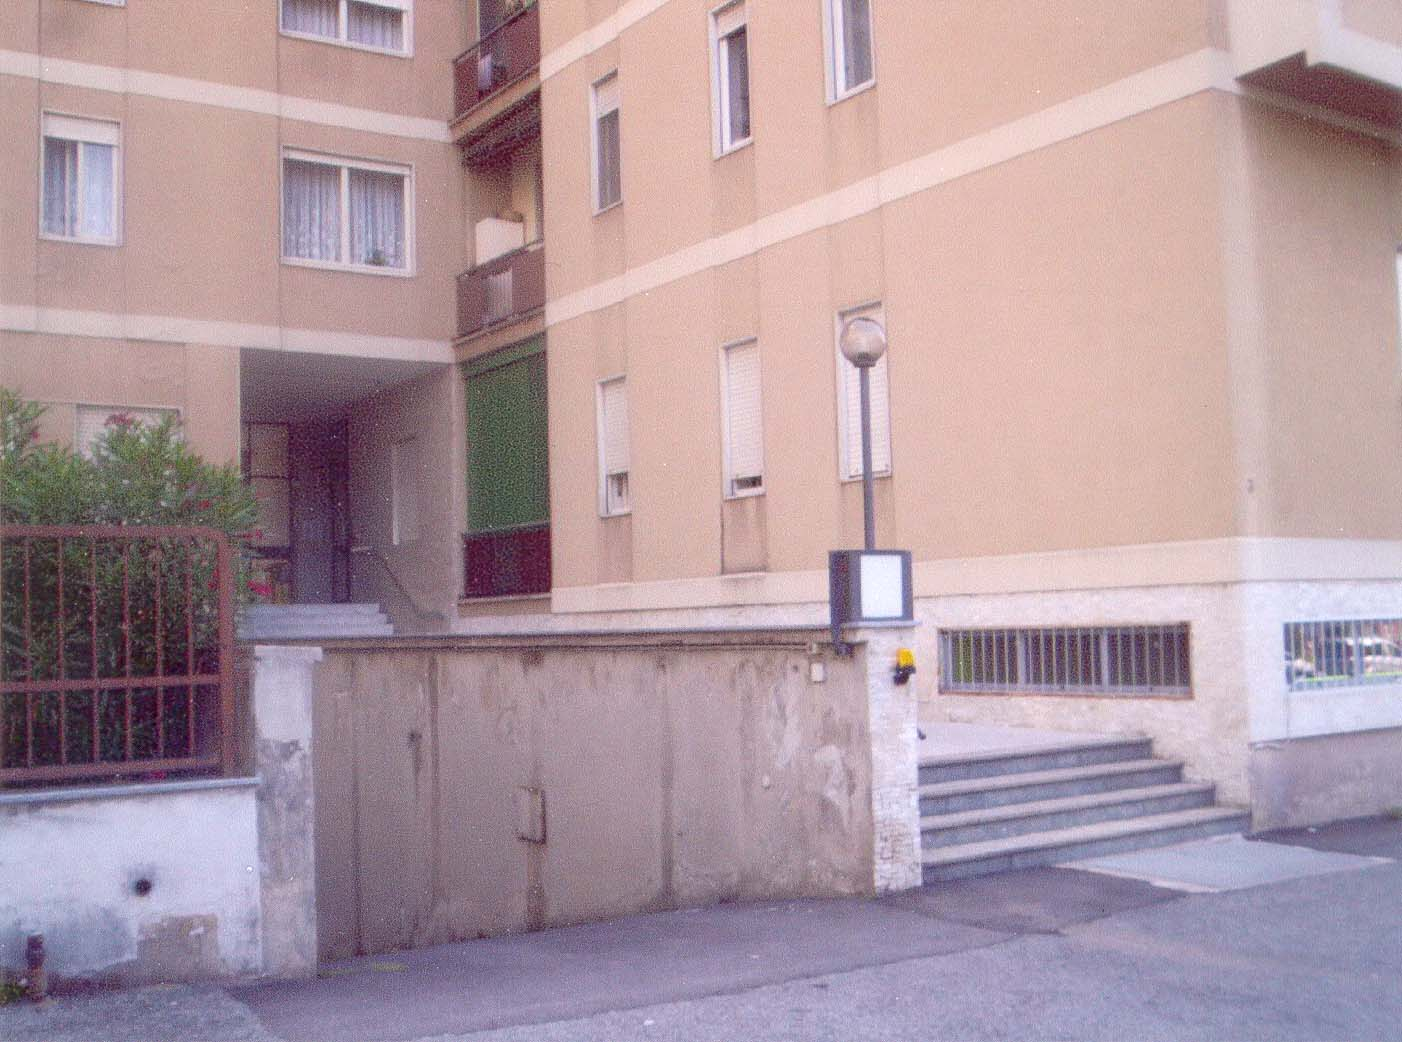 An apartment that was given to rescuer by the survivor Rezzetto Carlotta's family as a recognition for her assistance